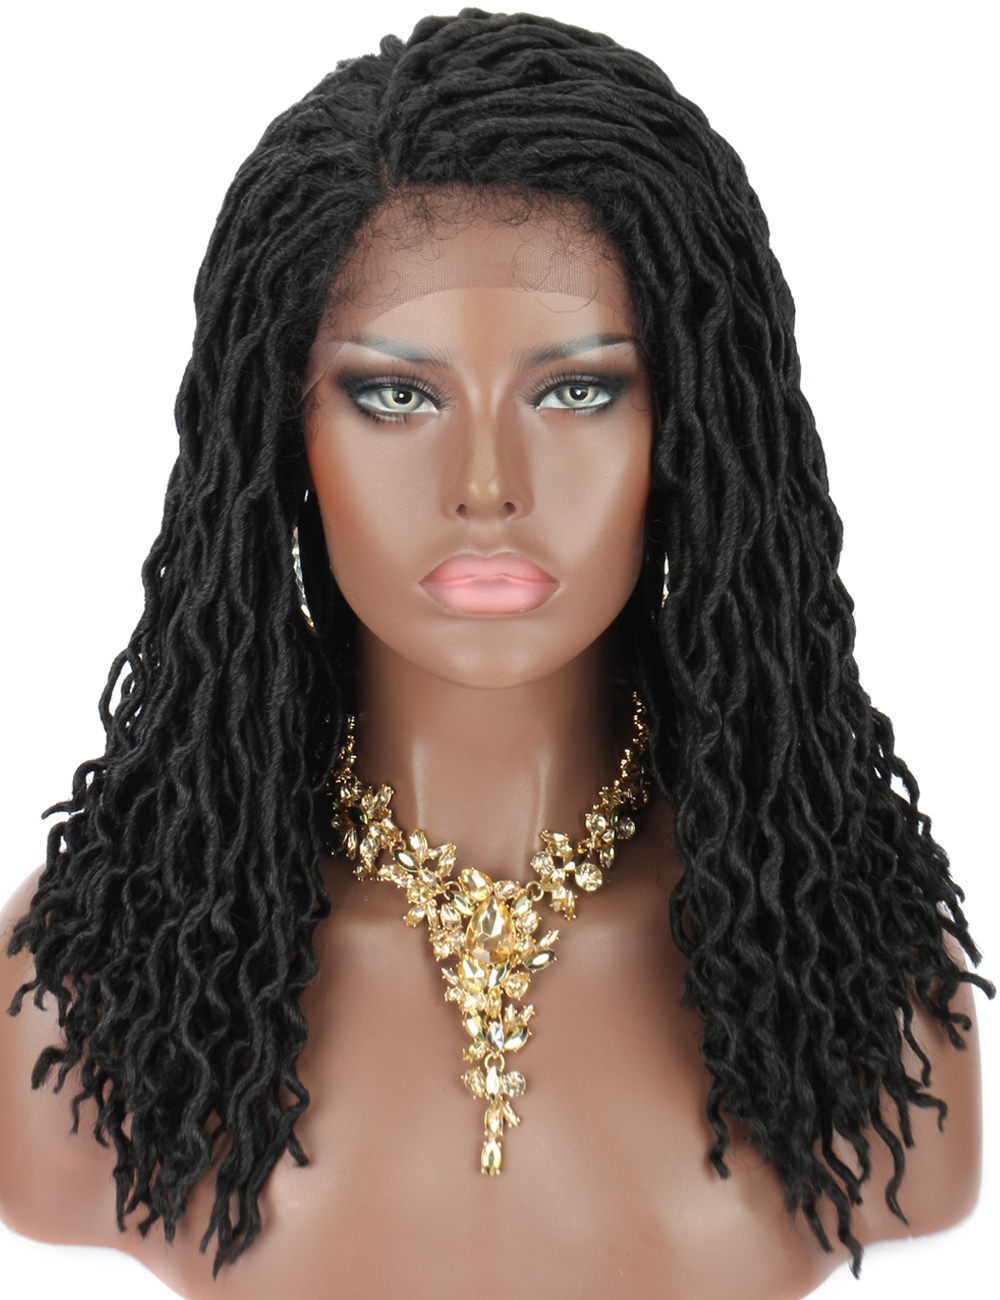 Kalyss 18 Inches Short Braided Wigs For Black Women Cornrow Braids Lace Wigs Synthetic Lace Front Wig Baby Hair Faux Locs Wig